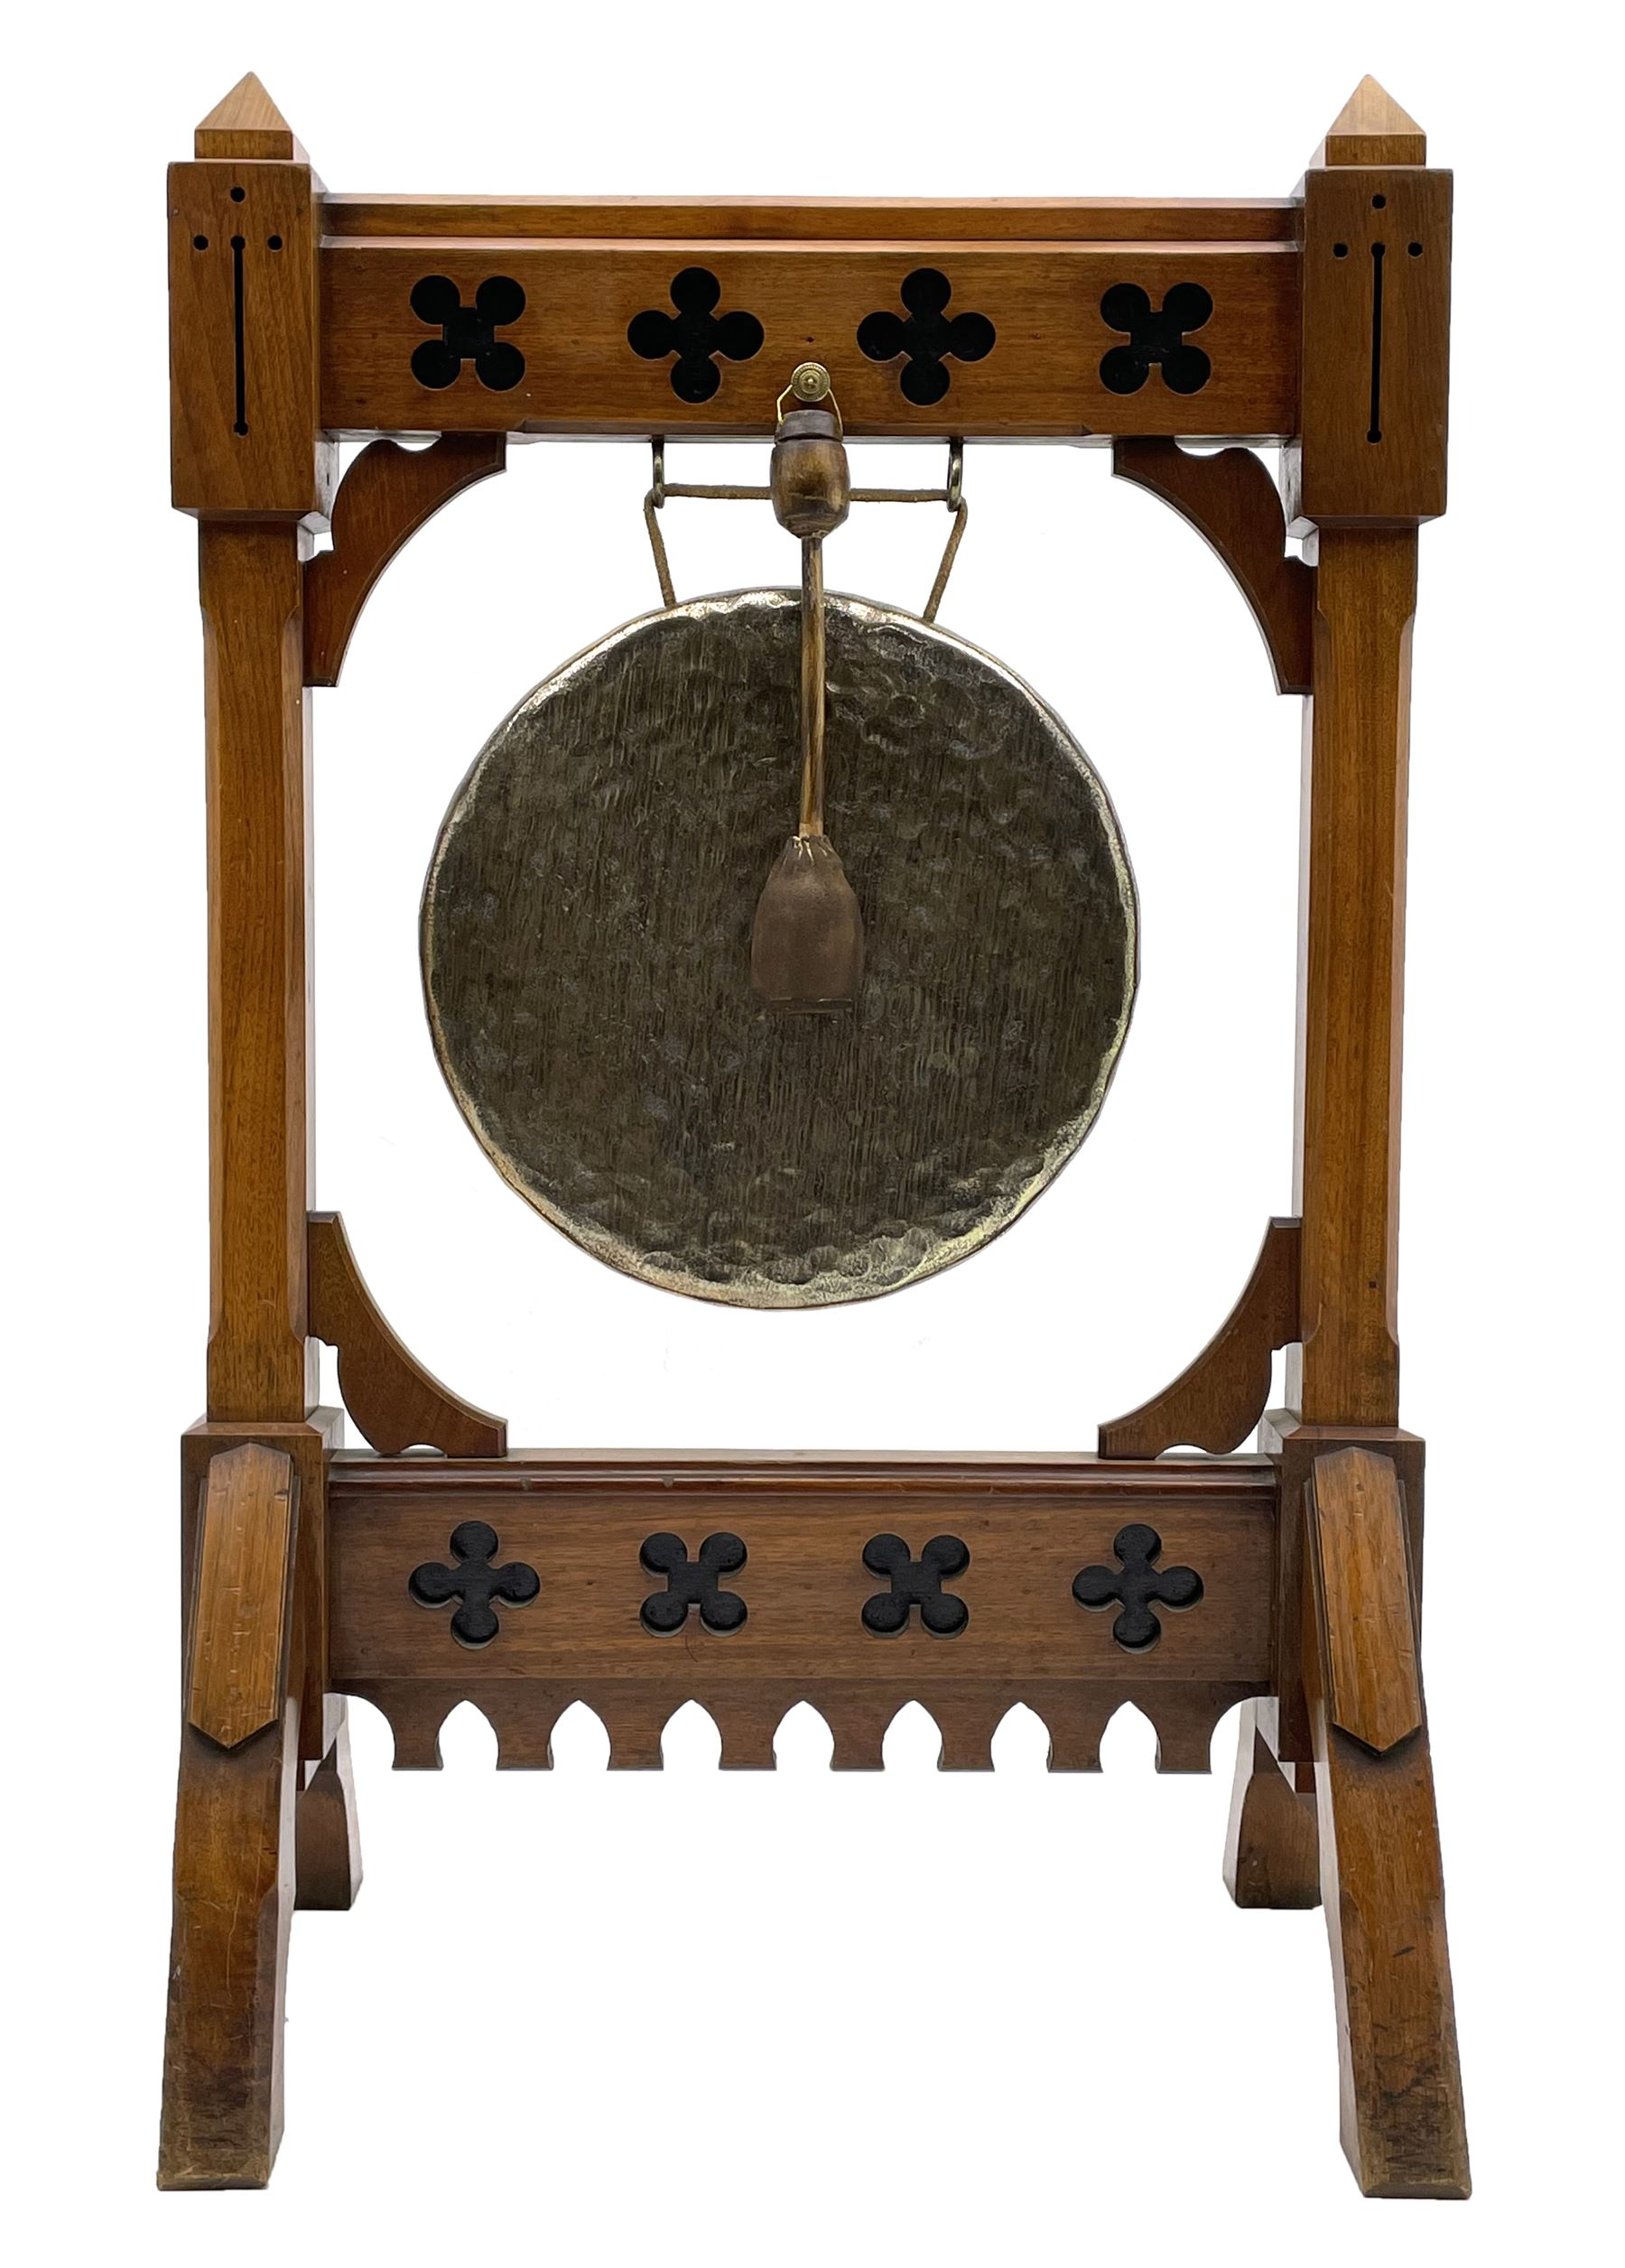 Late Victorian Aesthetic Movement walnut and ebonised dinner gong